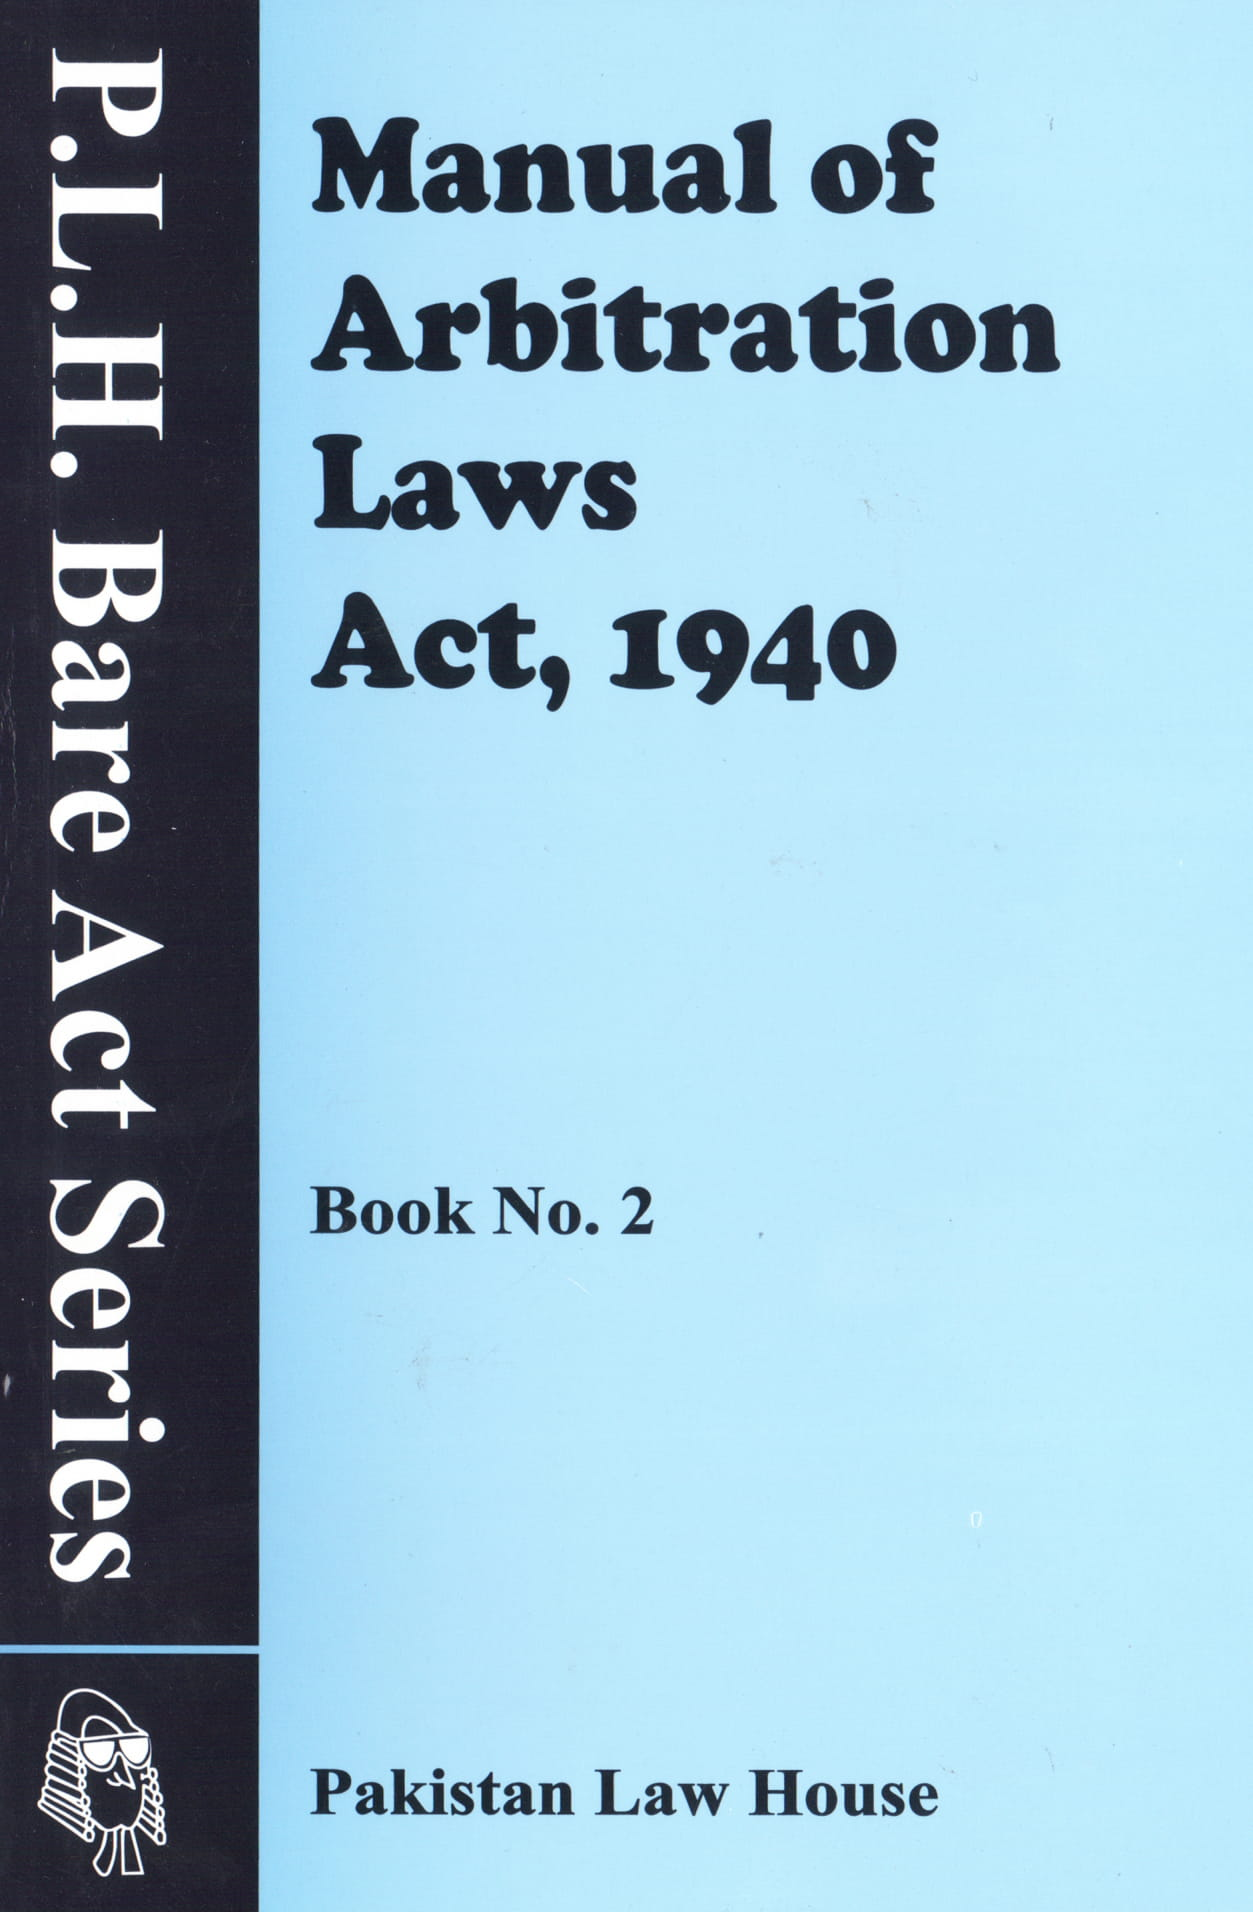 Manual Of Arbitration Laws Act, 1940